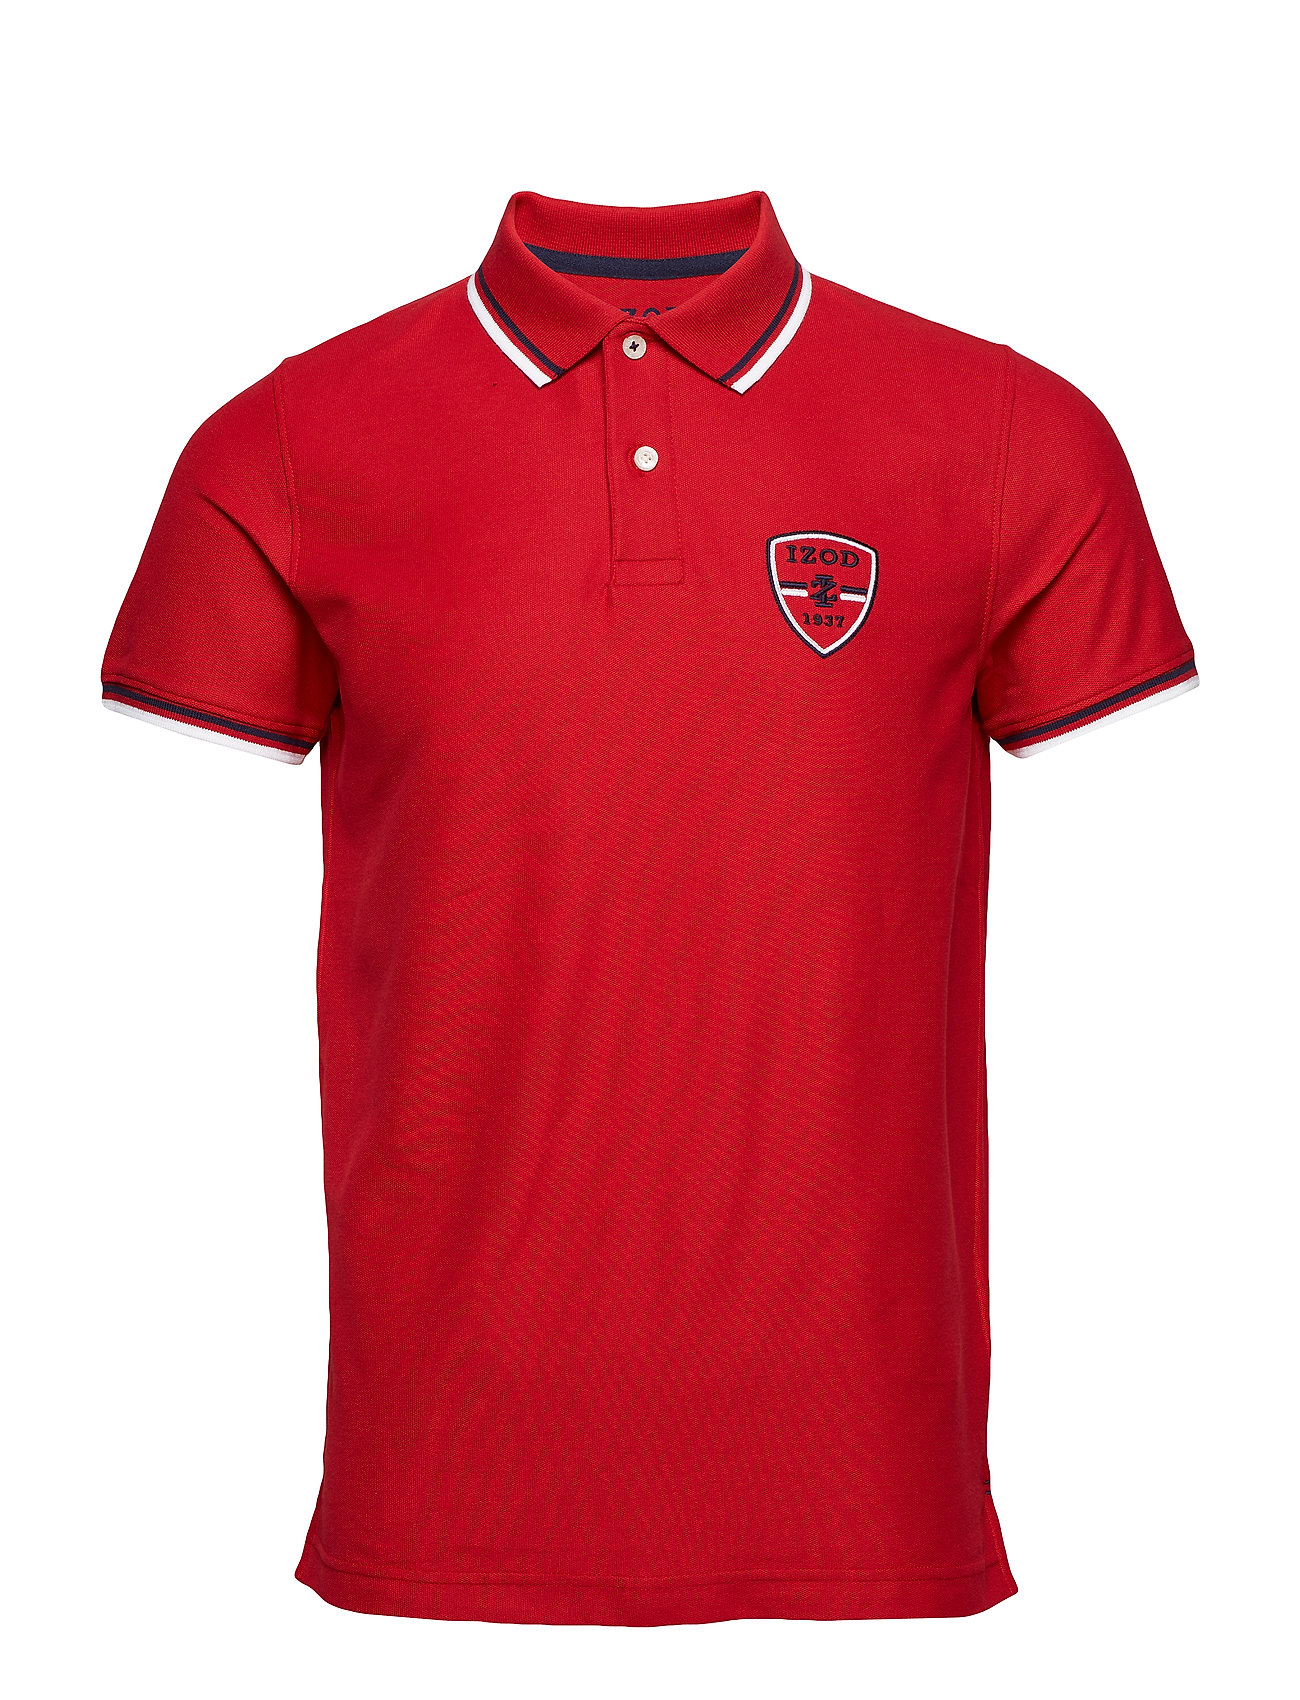 IZOD PERFORMANCE PATCH AMERICANA POLO - REAL RED